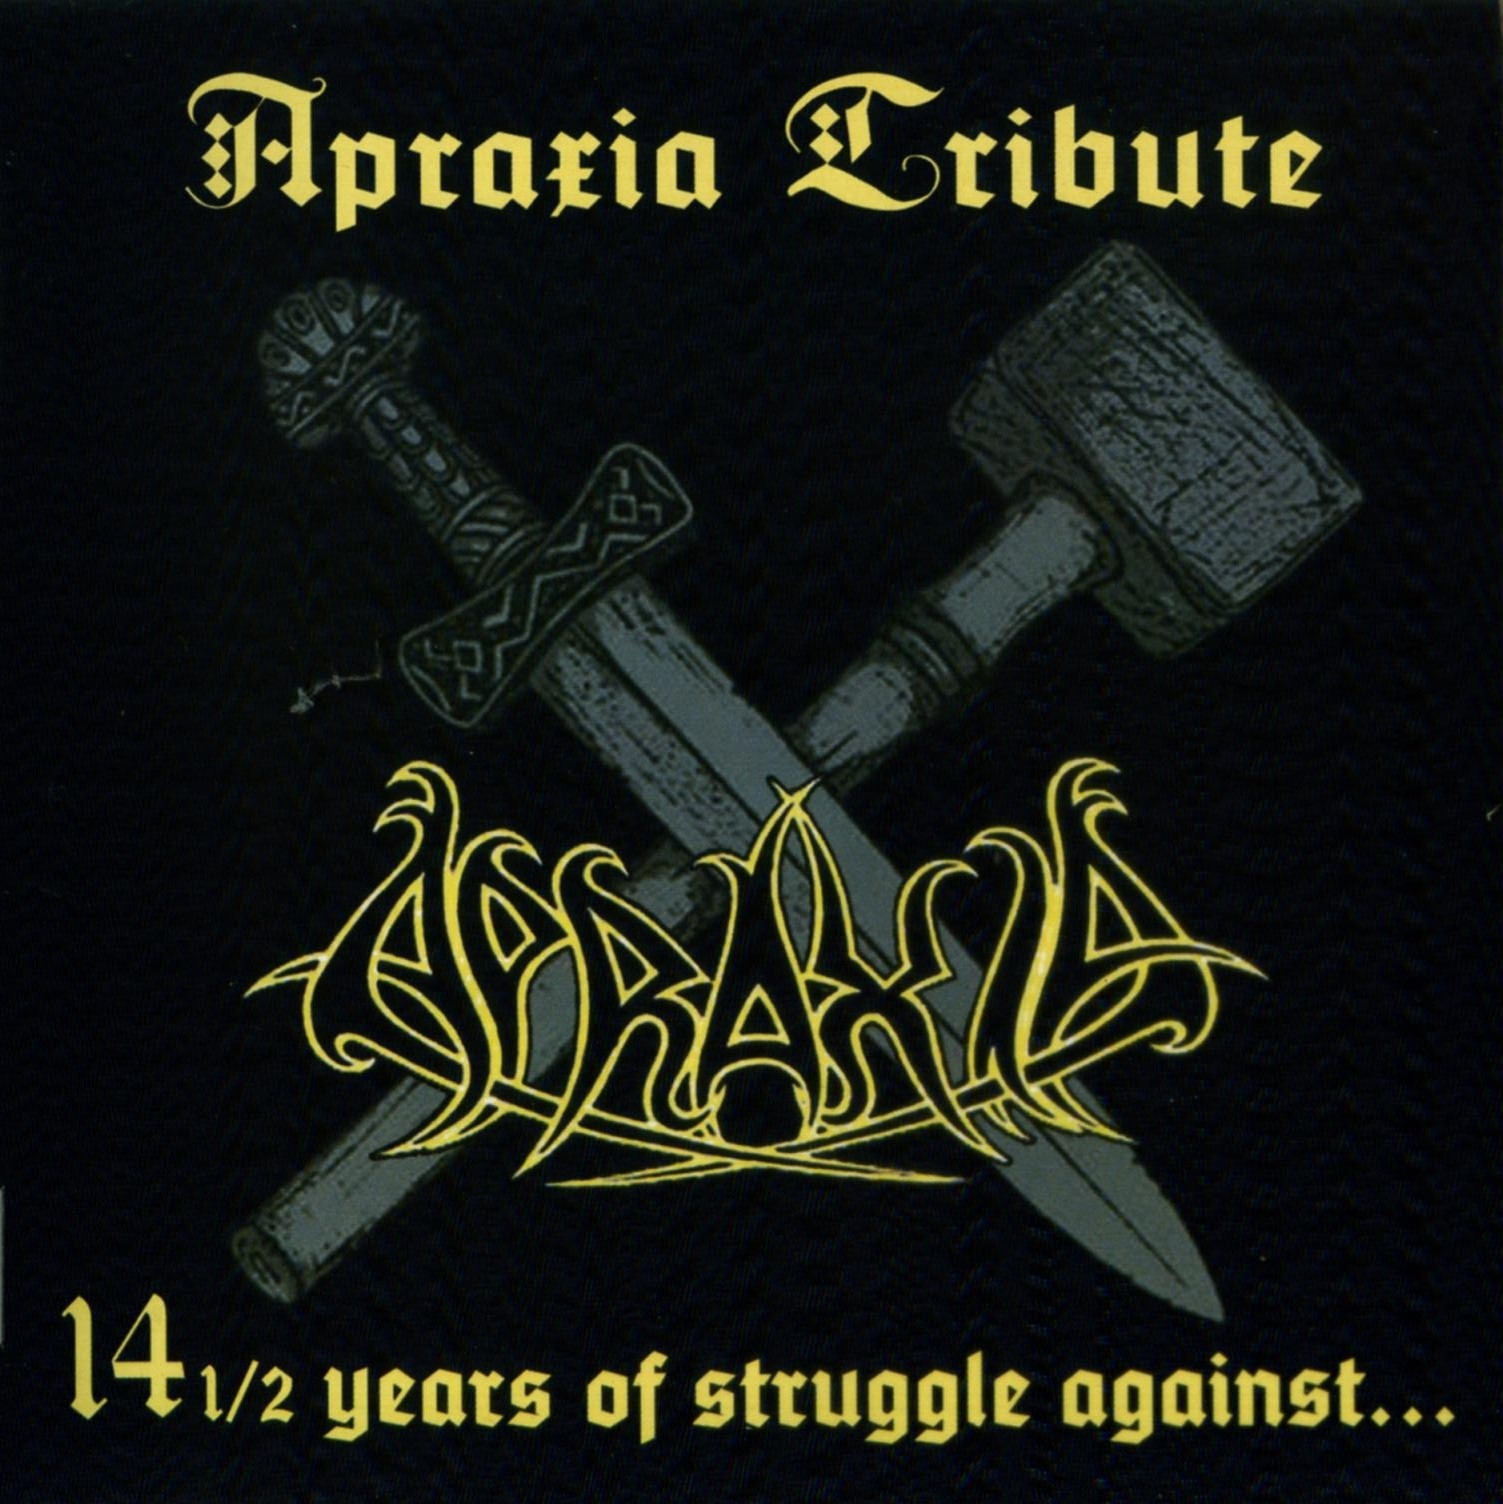 V/A Apraxia Tribute - 14 1/2 Years of Struggle Against 2CD